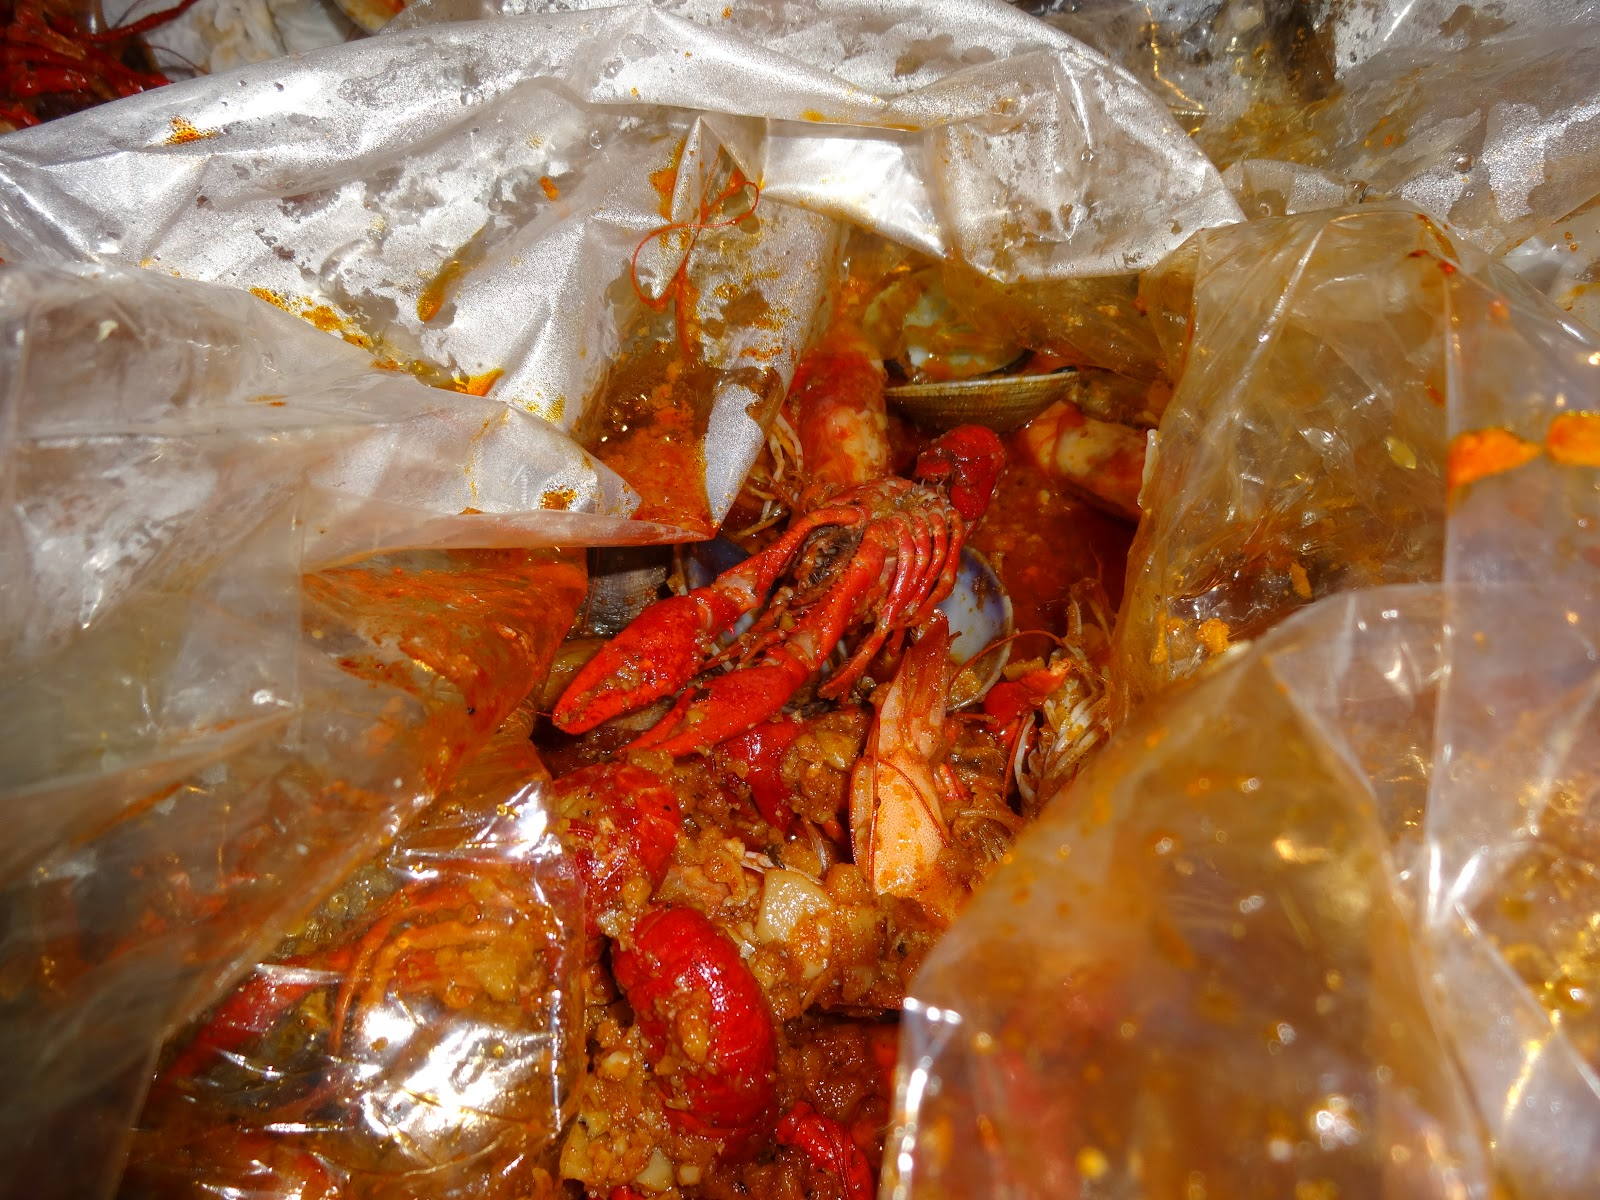 Eating My Way Through OC: Craving Claw\'s?